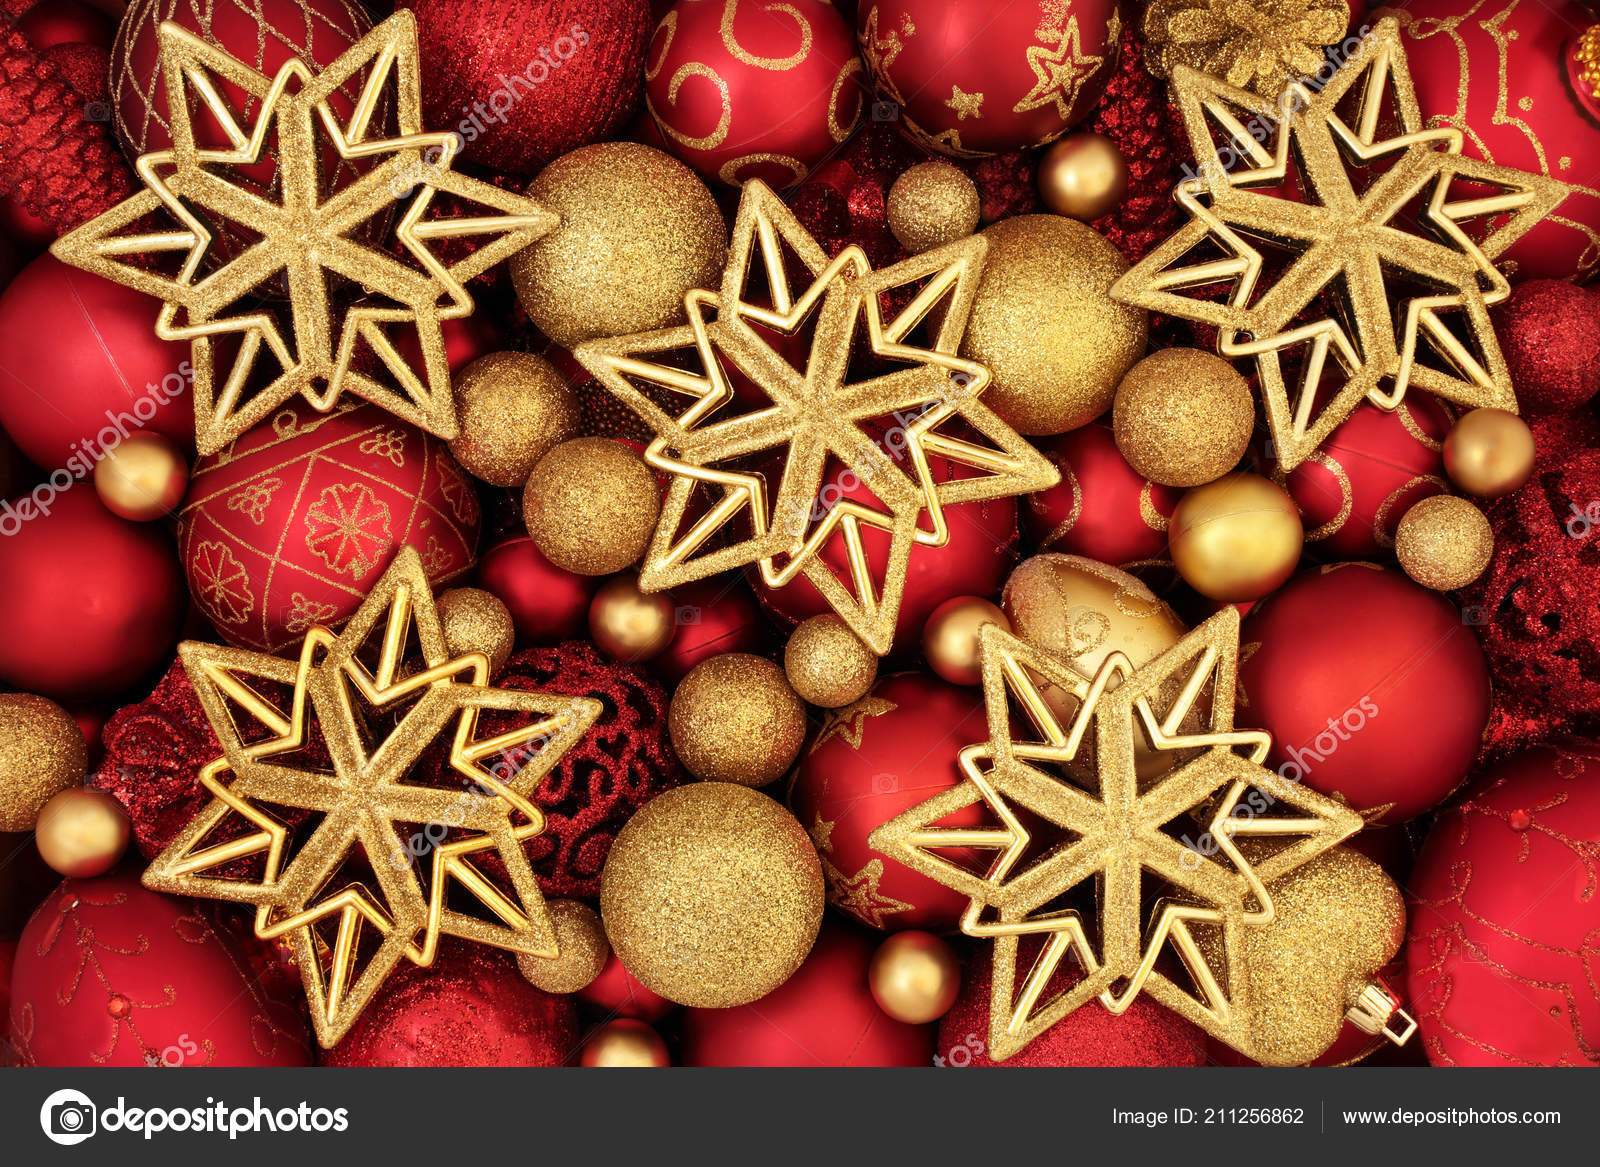 depositphotos 211256862 stock photo red christmas decorations gold balls